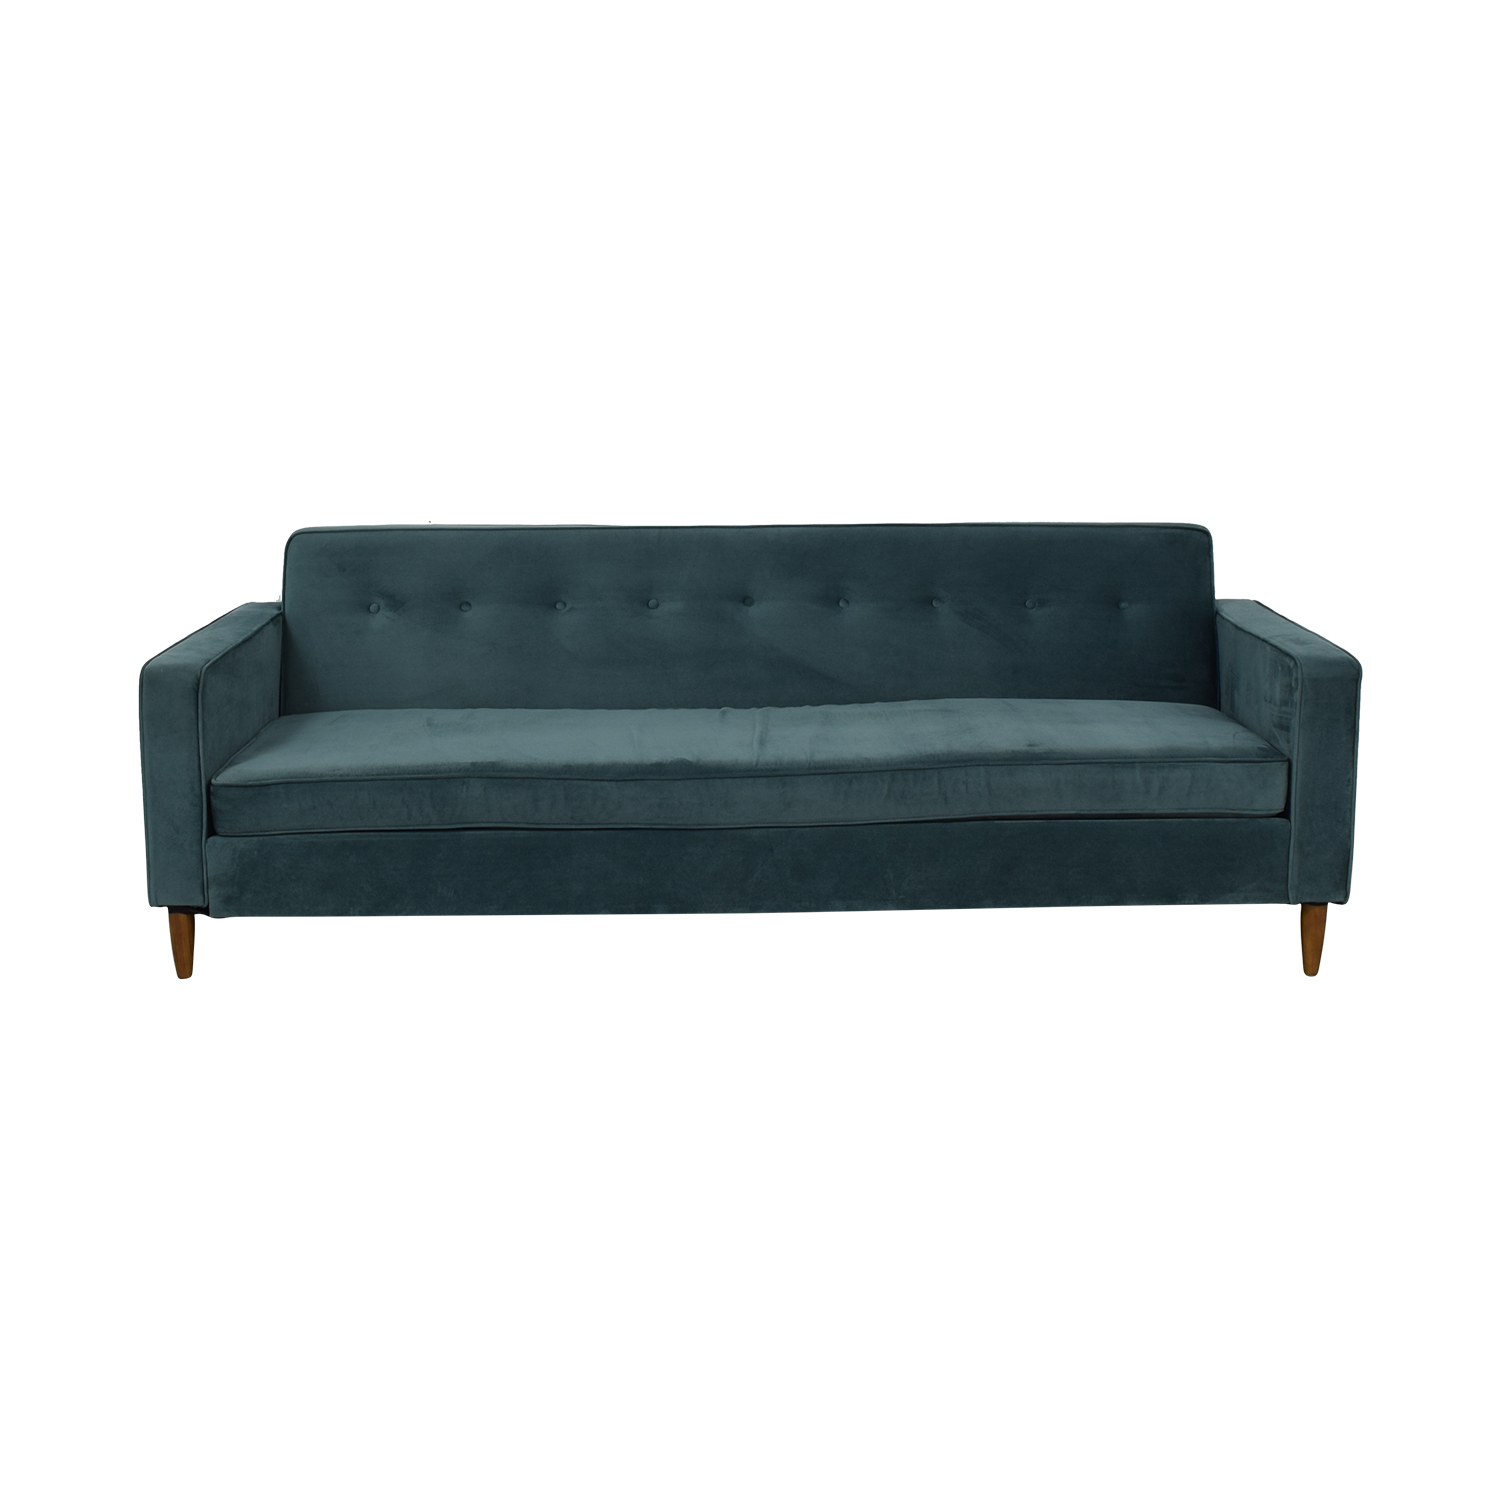 Kardiel Kardiel Teal Semi-Tufted Single Cushion Couch coupon